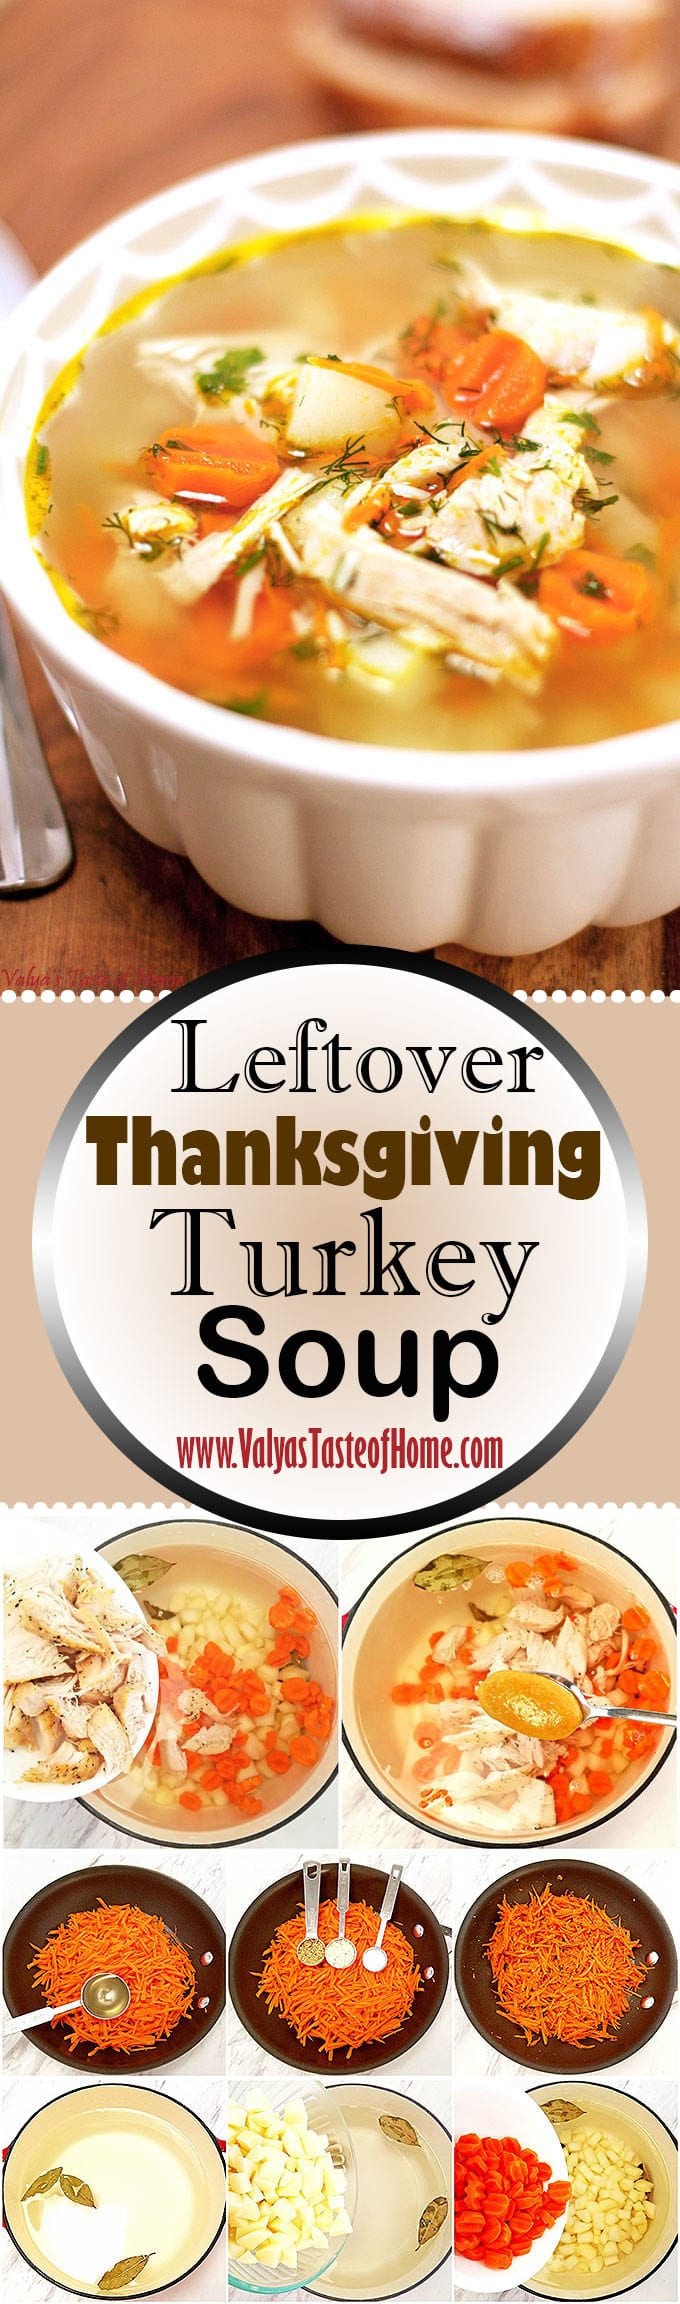 Do you have leftover turkey? What do you like to do with it? Make sandwiches? Have you ever tried making Leftover Thanksgiving Turkey Rice Soup Recipe? If you are lucky to have leftover, this is one of the best things to do with it. I love having soup the next day after the Thanksgiving holiday. #leftoverturkeysoup #turkeyricesoup #valyastasteofhome